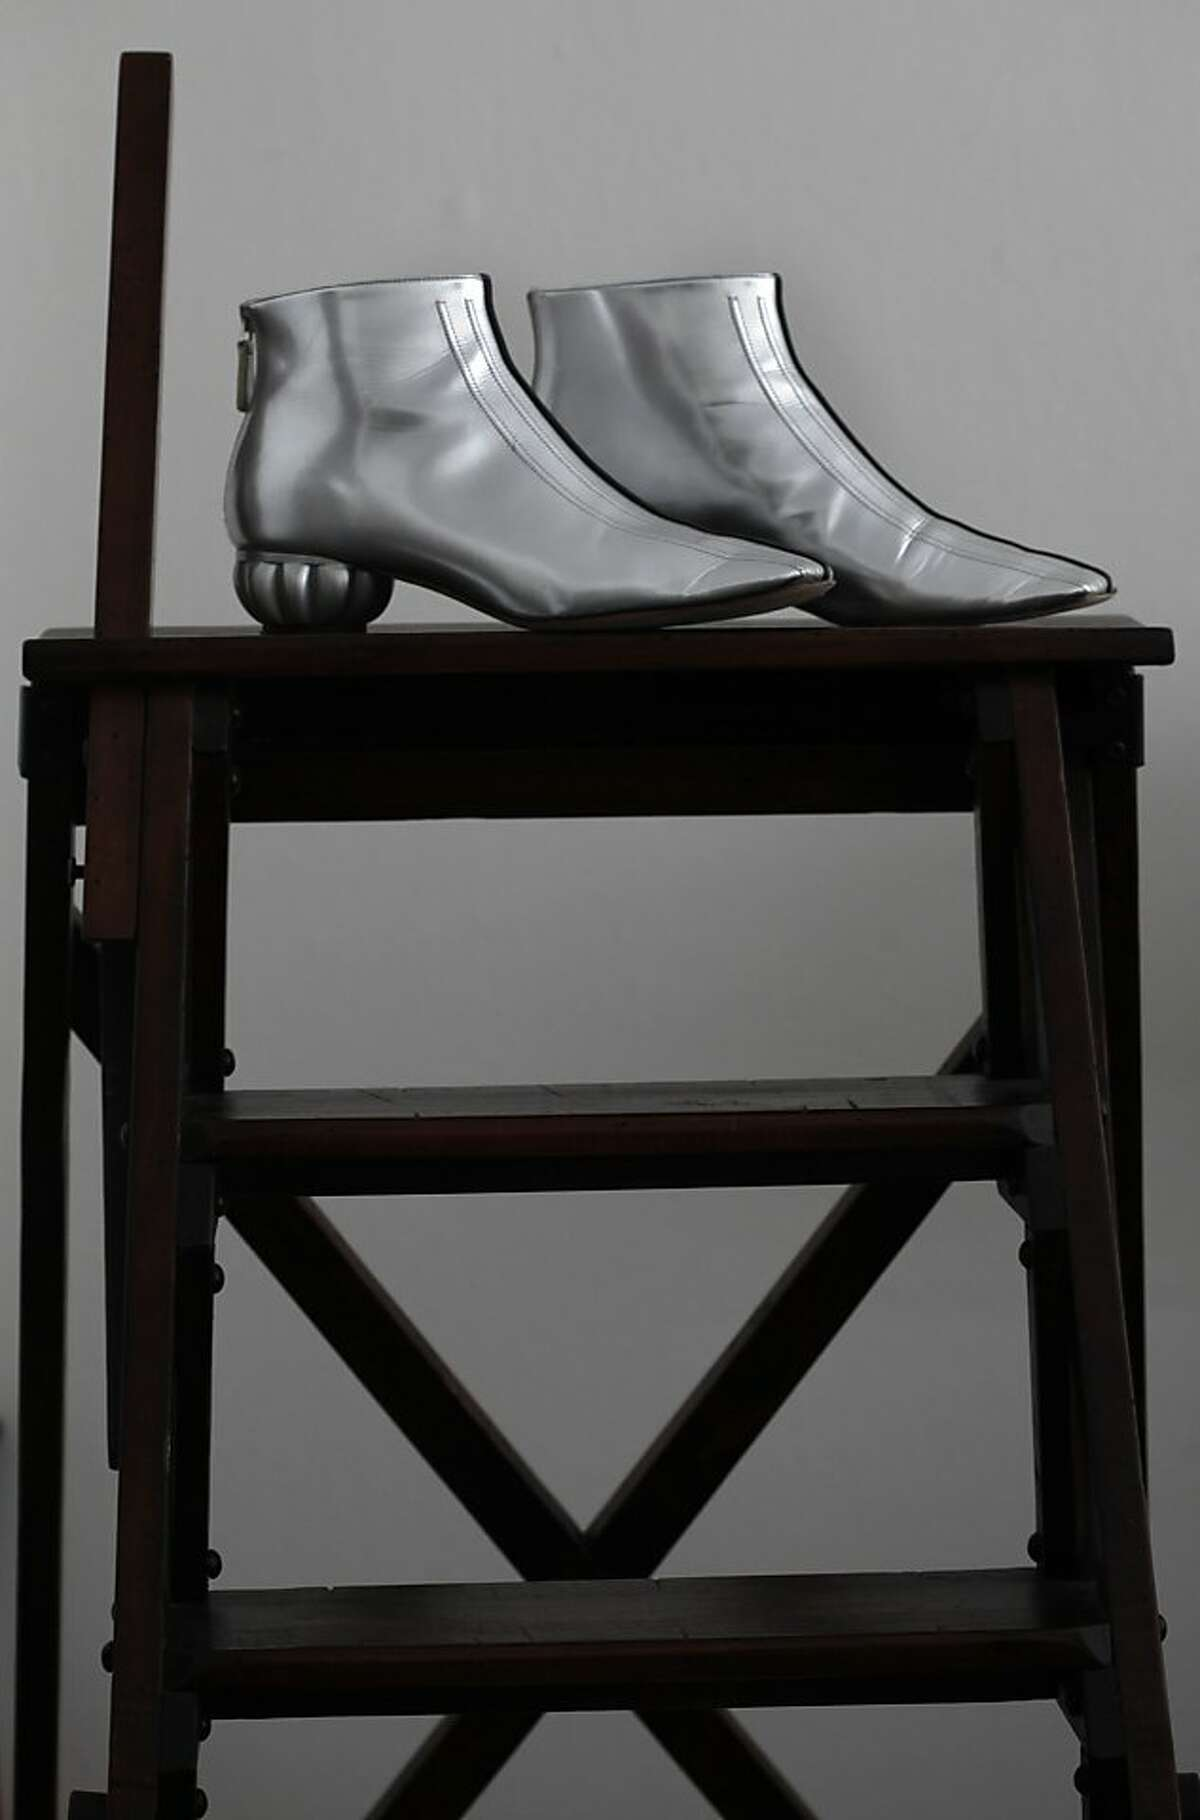 Tanya Powell, chairwoman of this year's San Francisco Ballet gala opening night shows her pair of silver Chanel boots at home in San Francisco, Calif., on Tuesday, December 31, 2013.